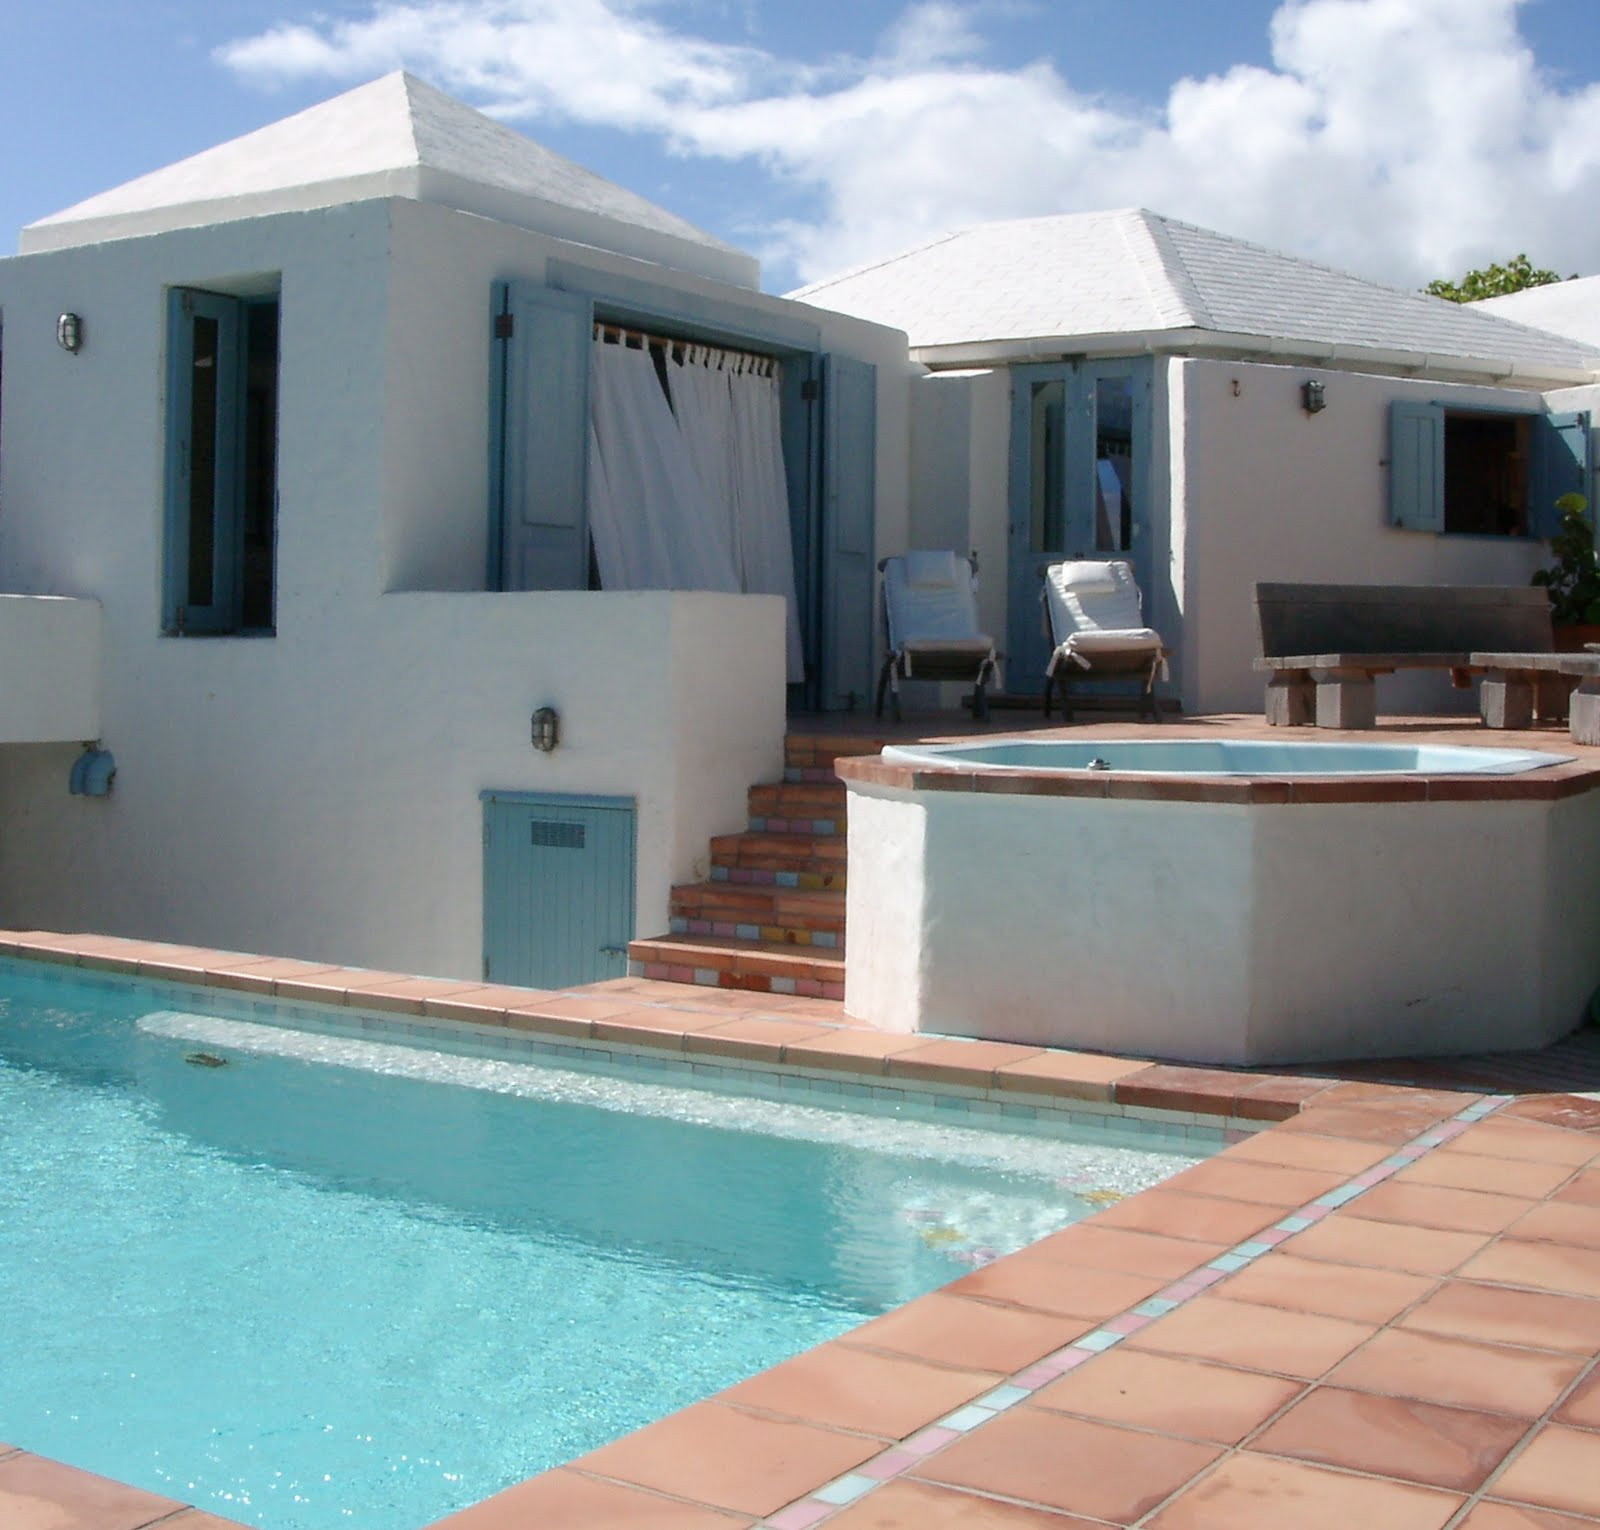 Real Estate Rental Companies: BARTHOME ST BARTS REAL ESTATE